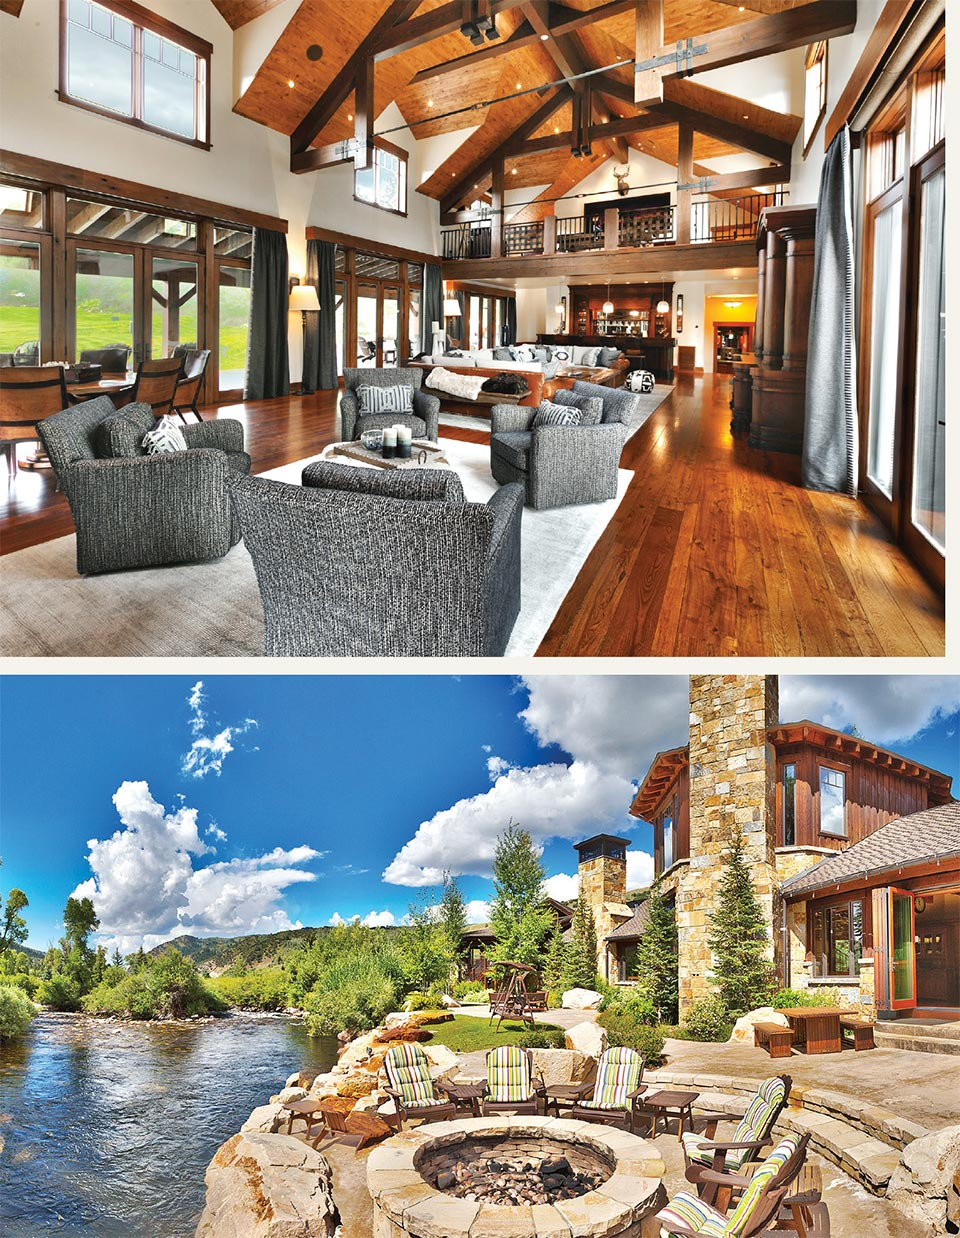 Luxury Listings in the Place We Call Home- Park City Interior and Fire Pit